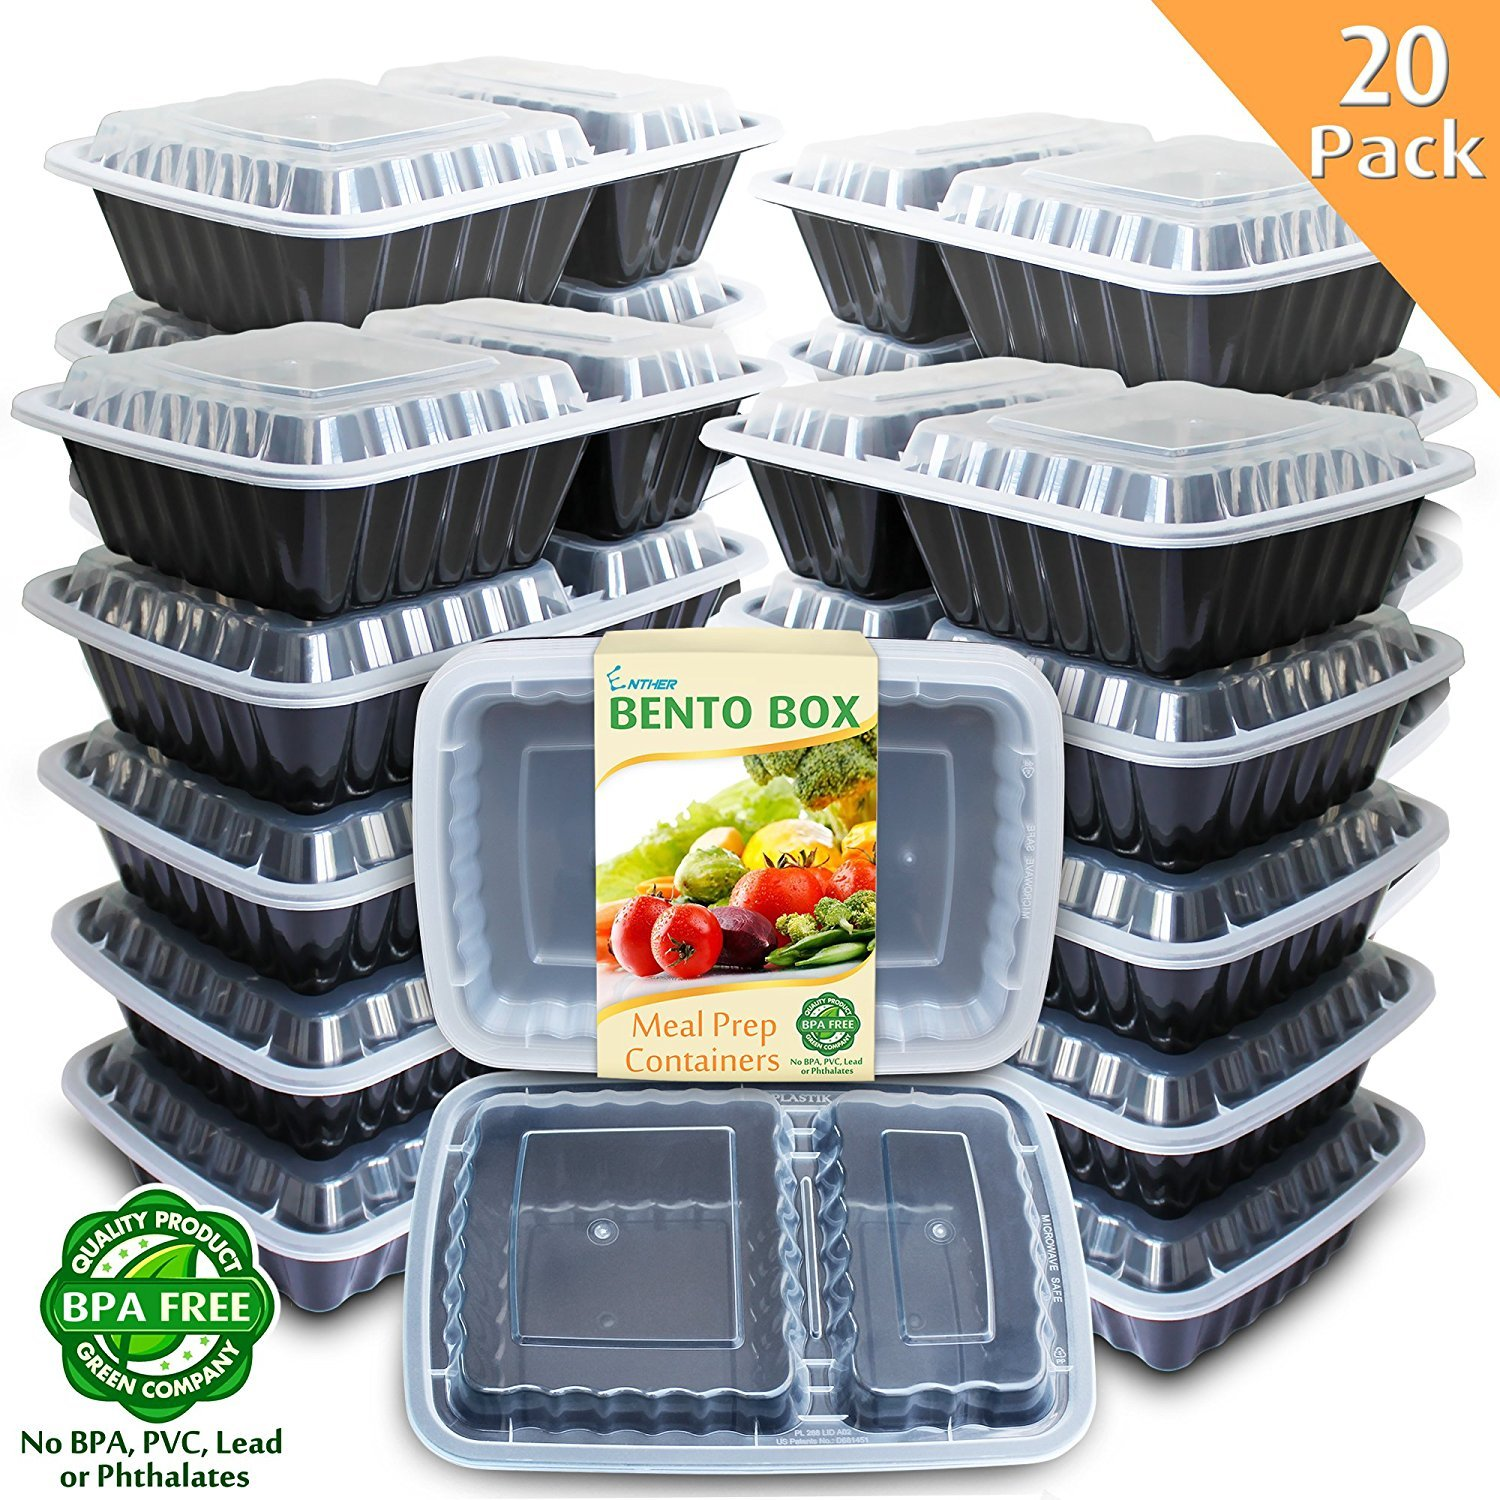 Meal Prep Containers: 20-Pack.